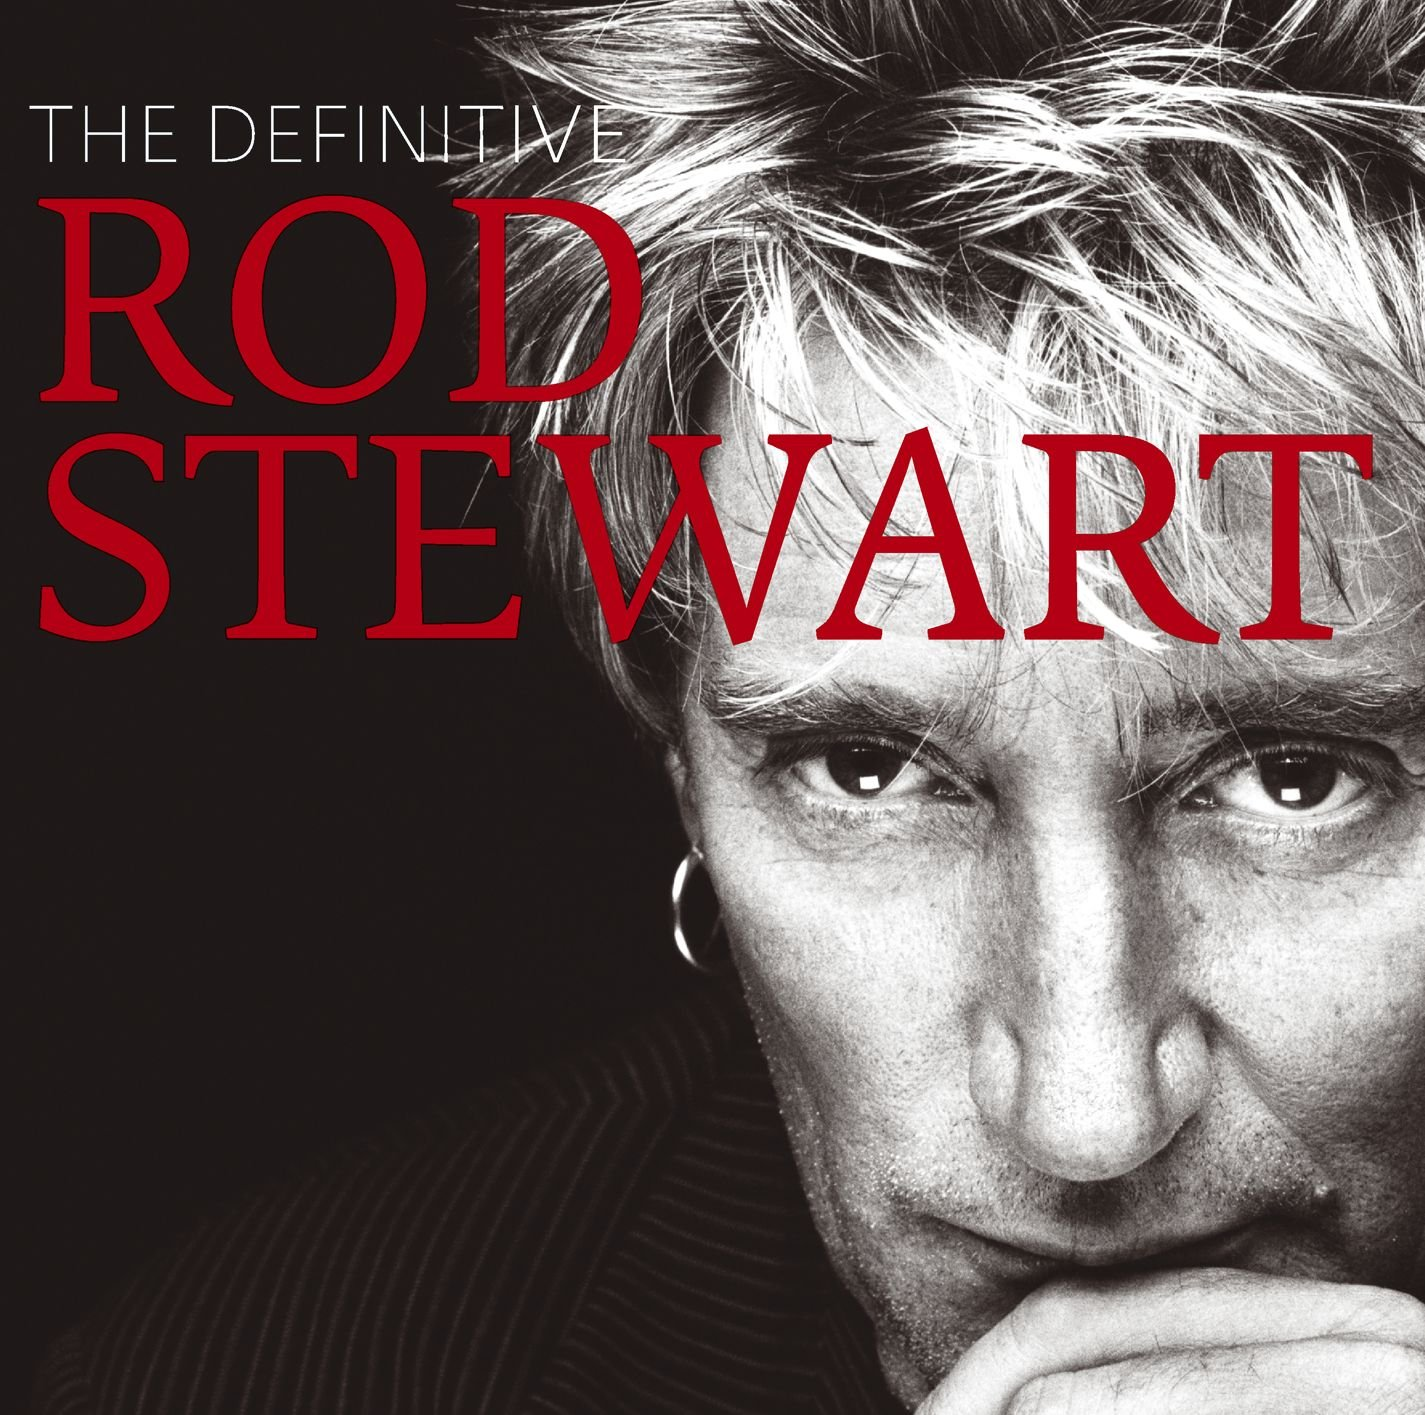 The Definitive Rod Stewart (2CD) by Warner Bros.